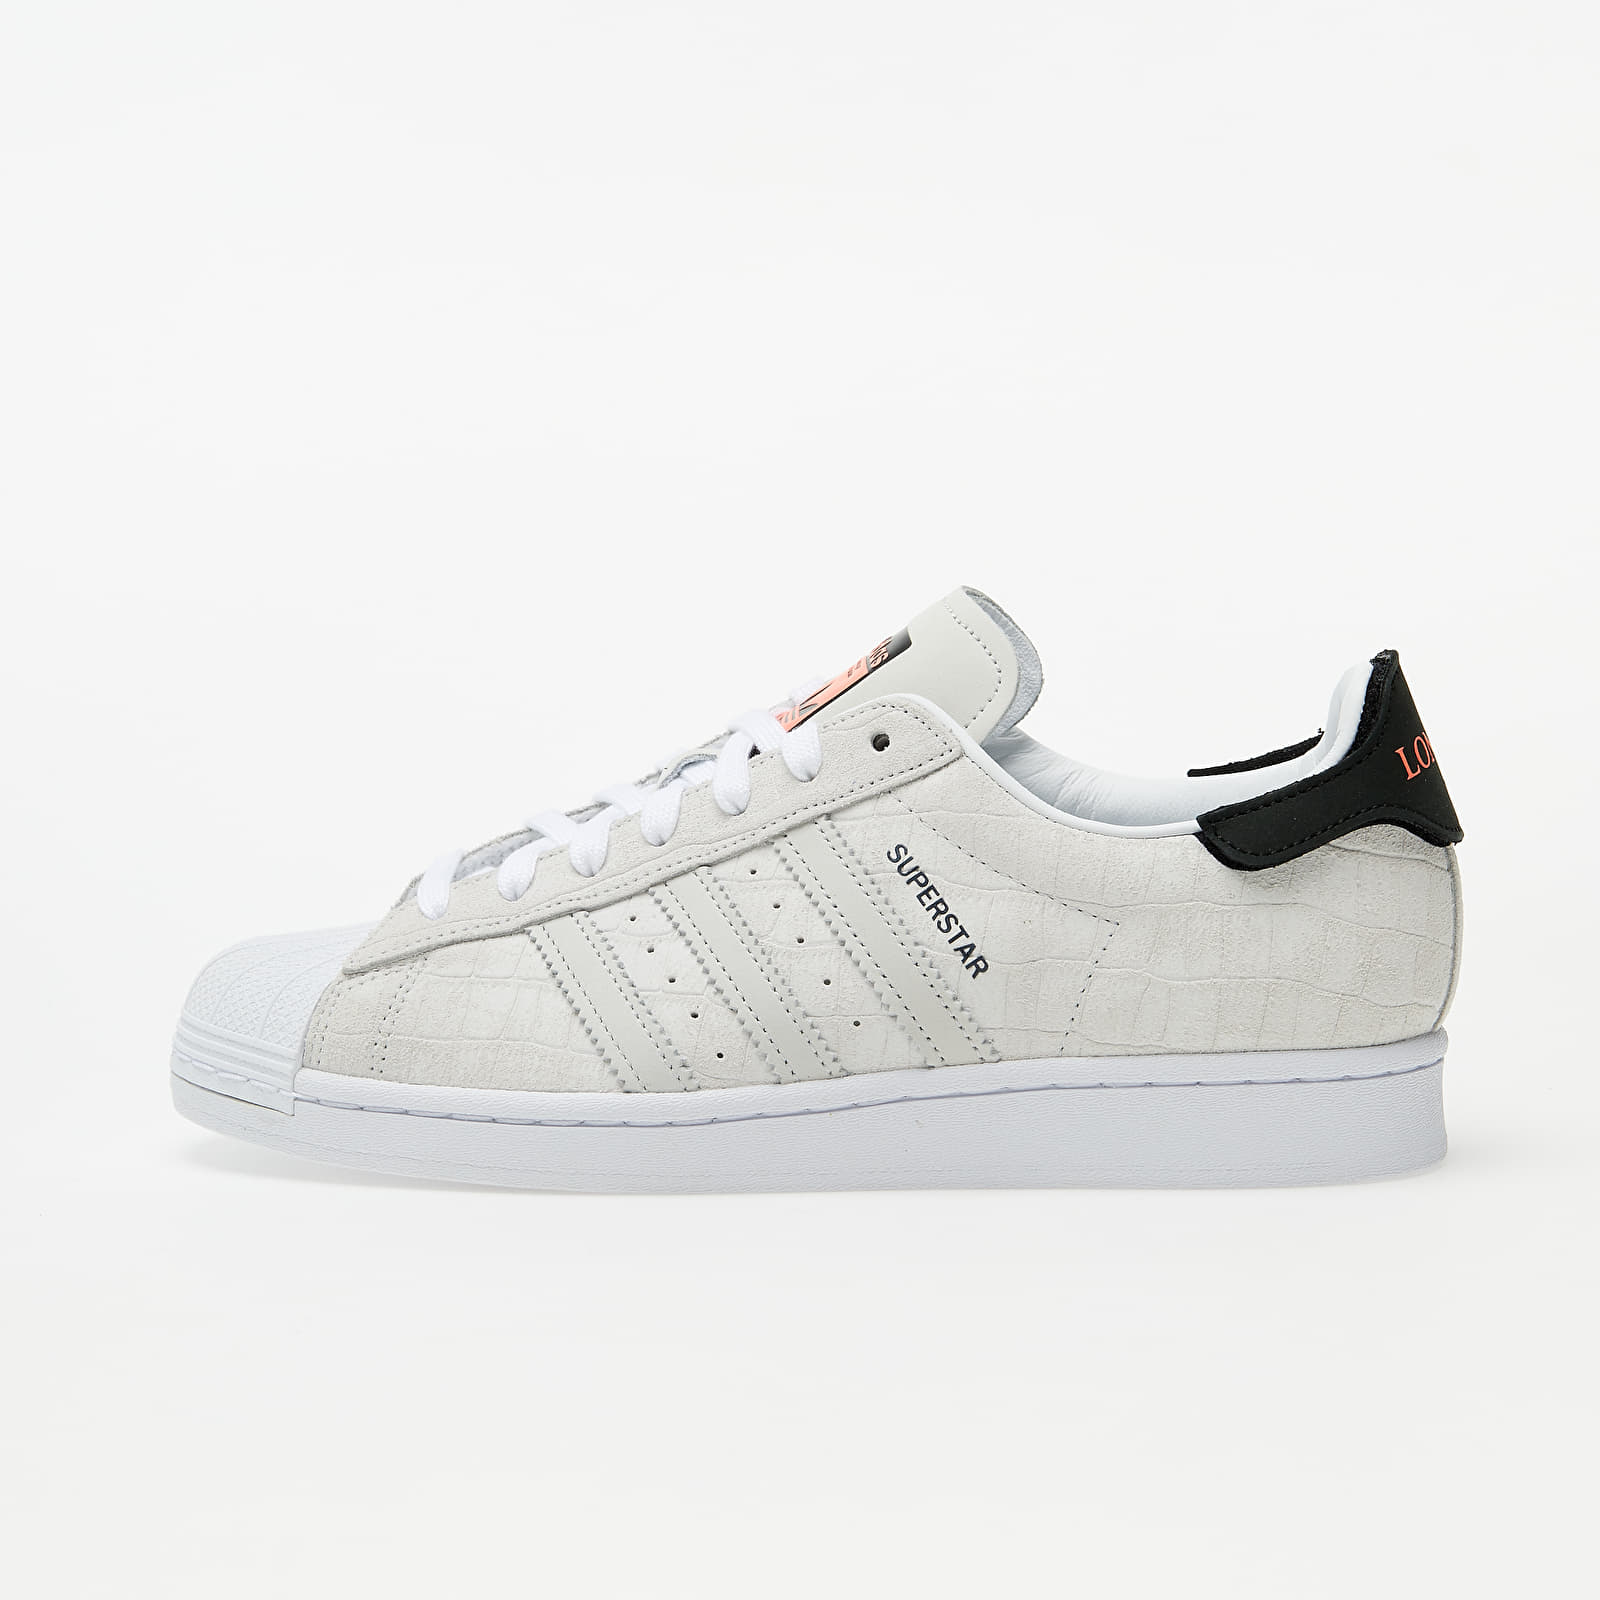 adidas Superstar Ftwr White/ Crystal White/ Core Black EUR 38